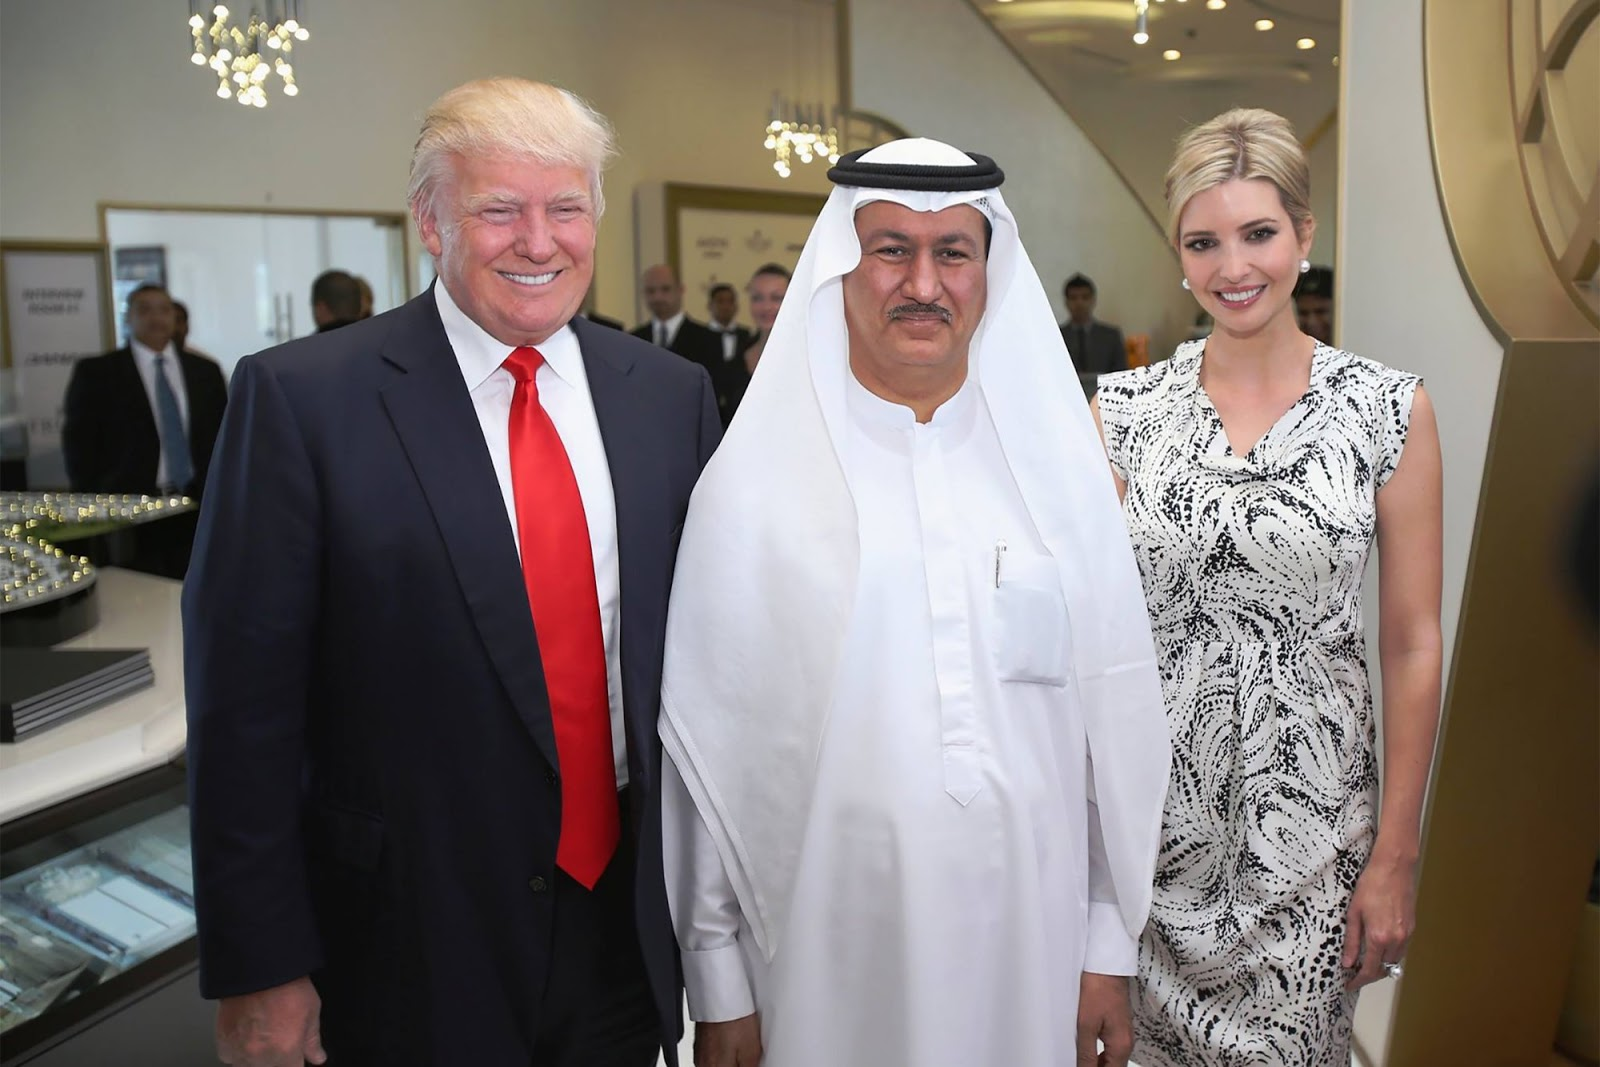 Trump with Middle East